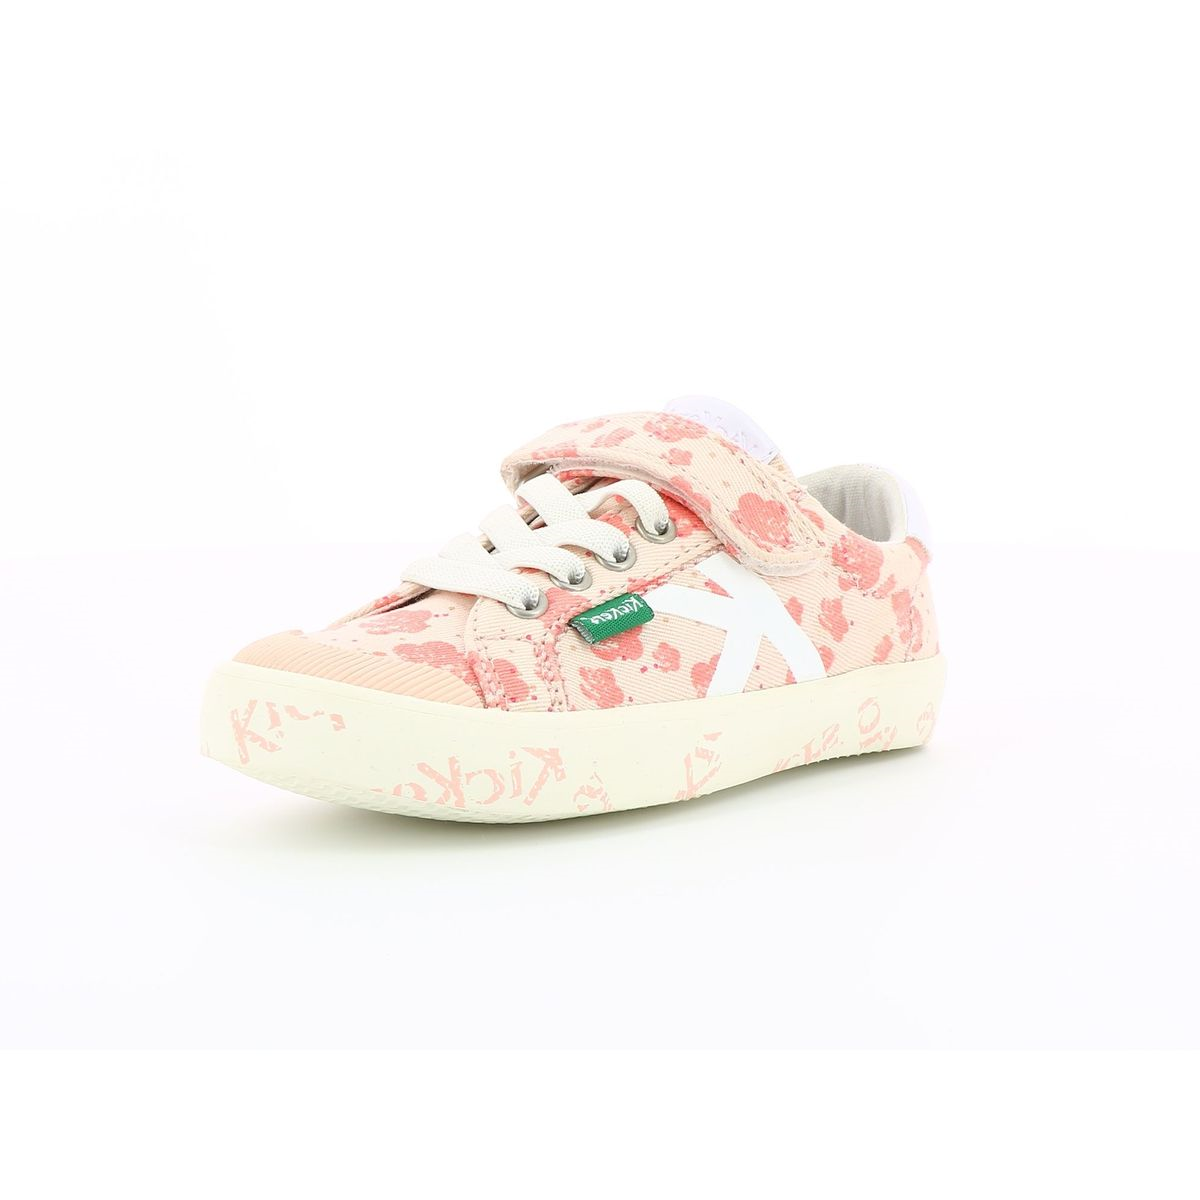 Kickers fille gody rose1323301_2